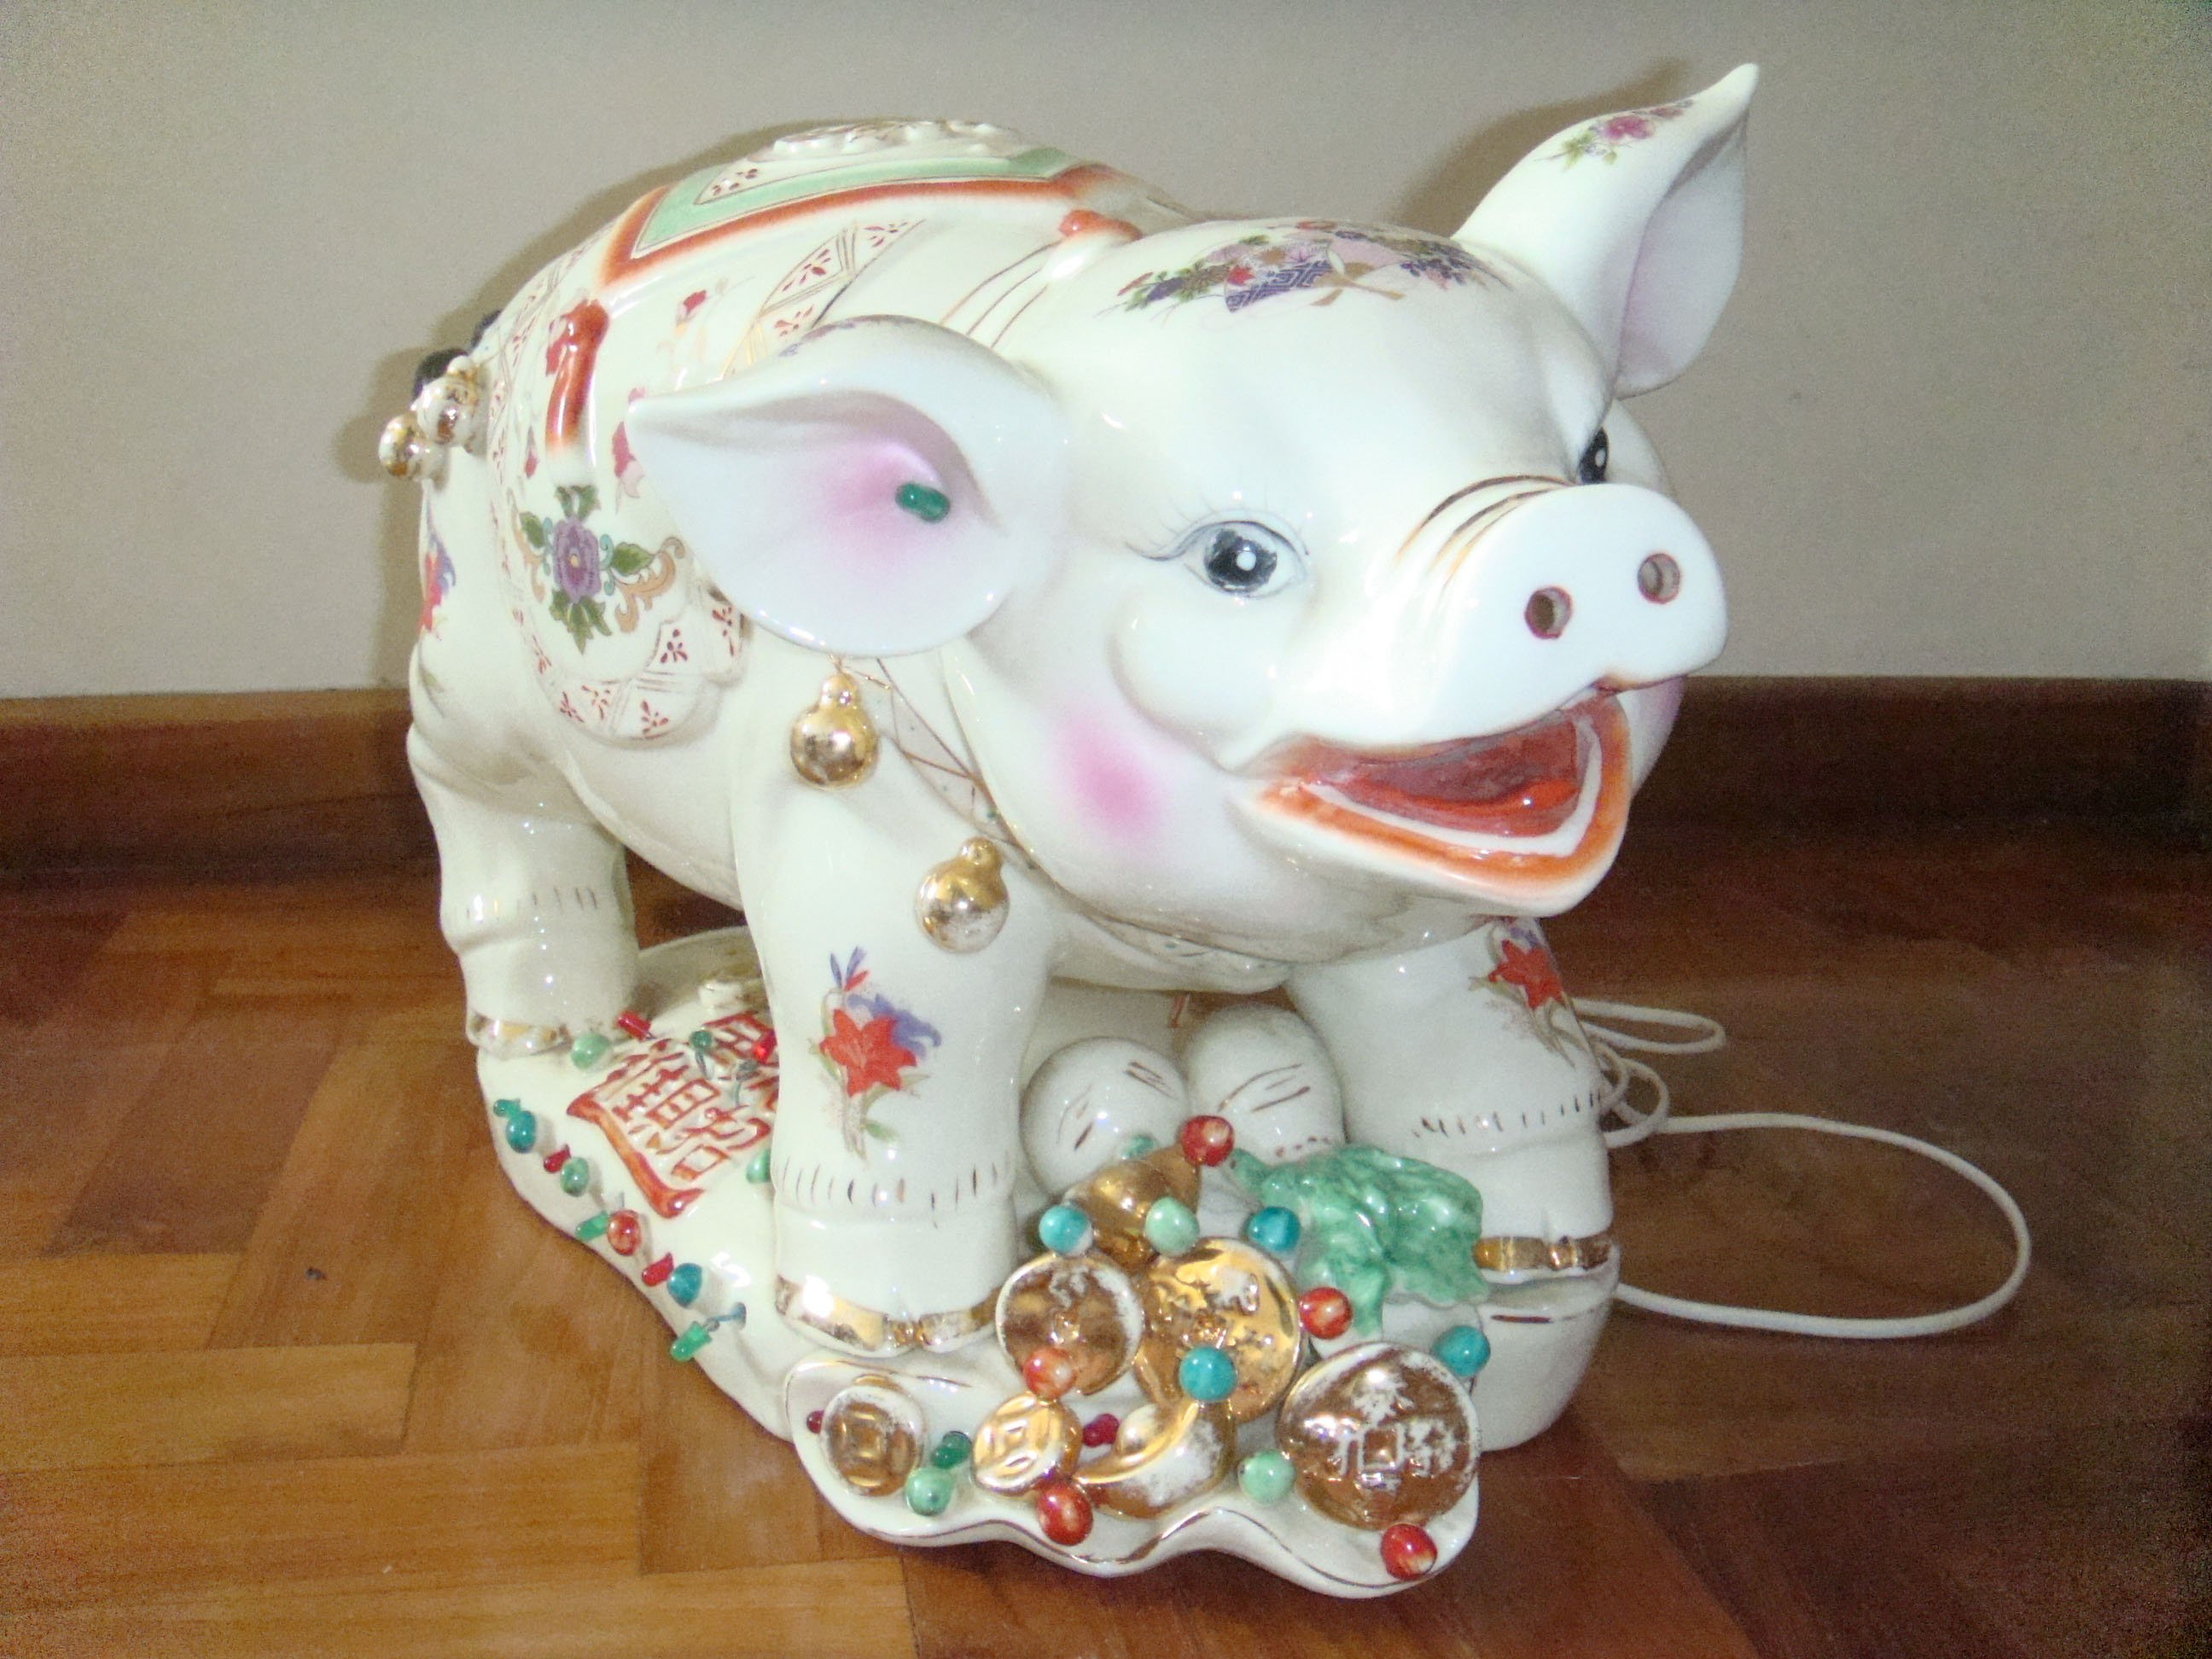 FOR SALE: Lucky Glass Pig Ornament/Money Bank